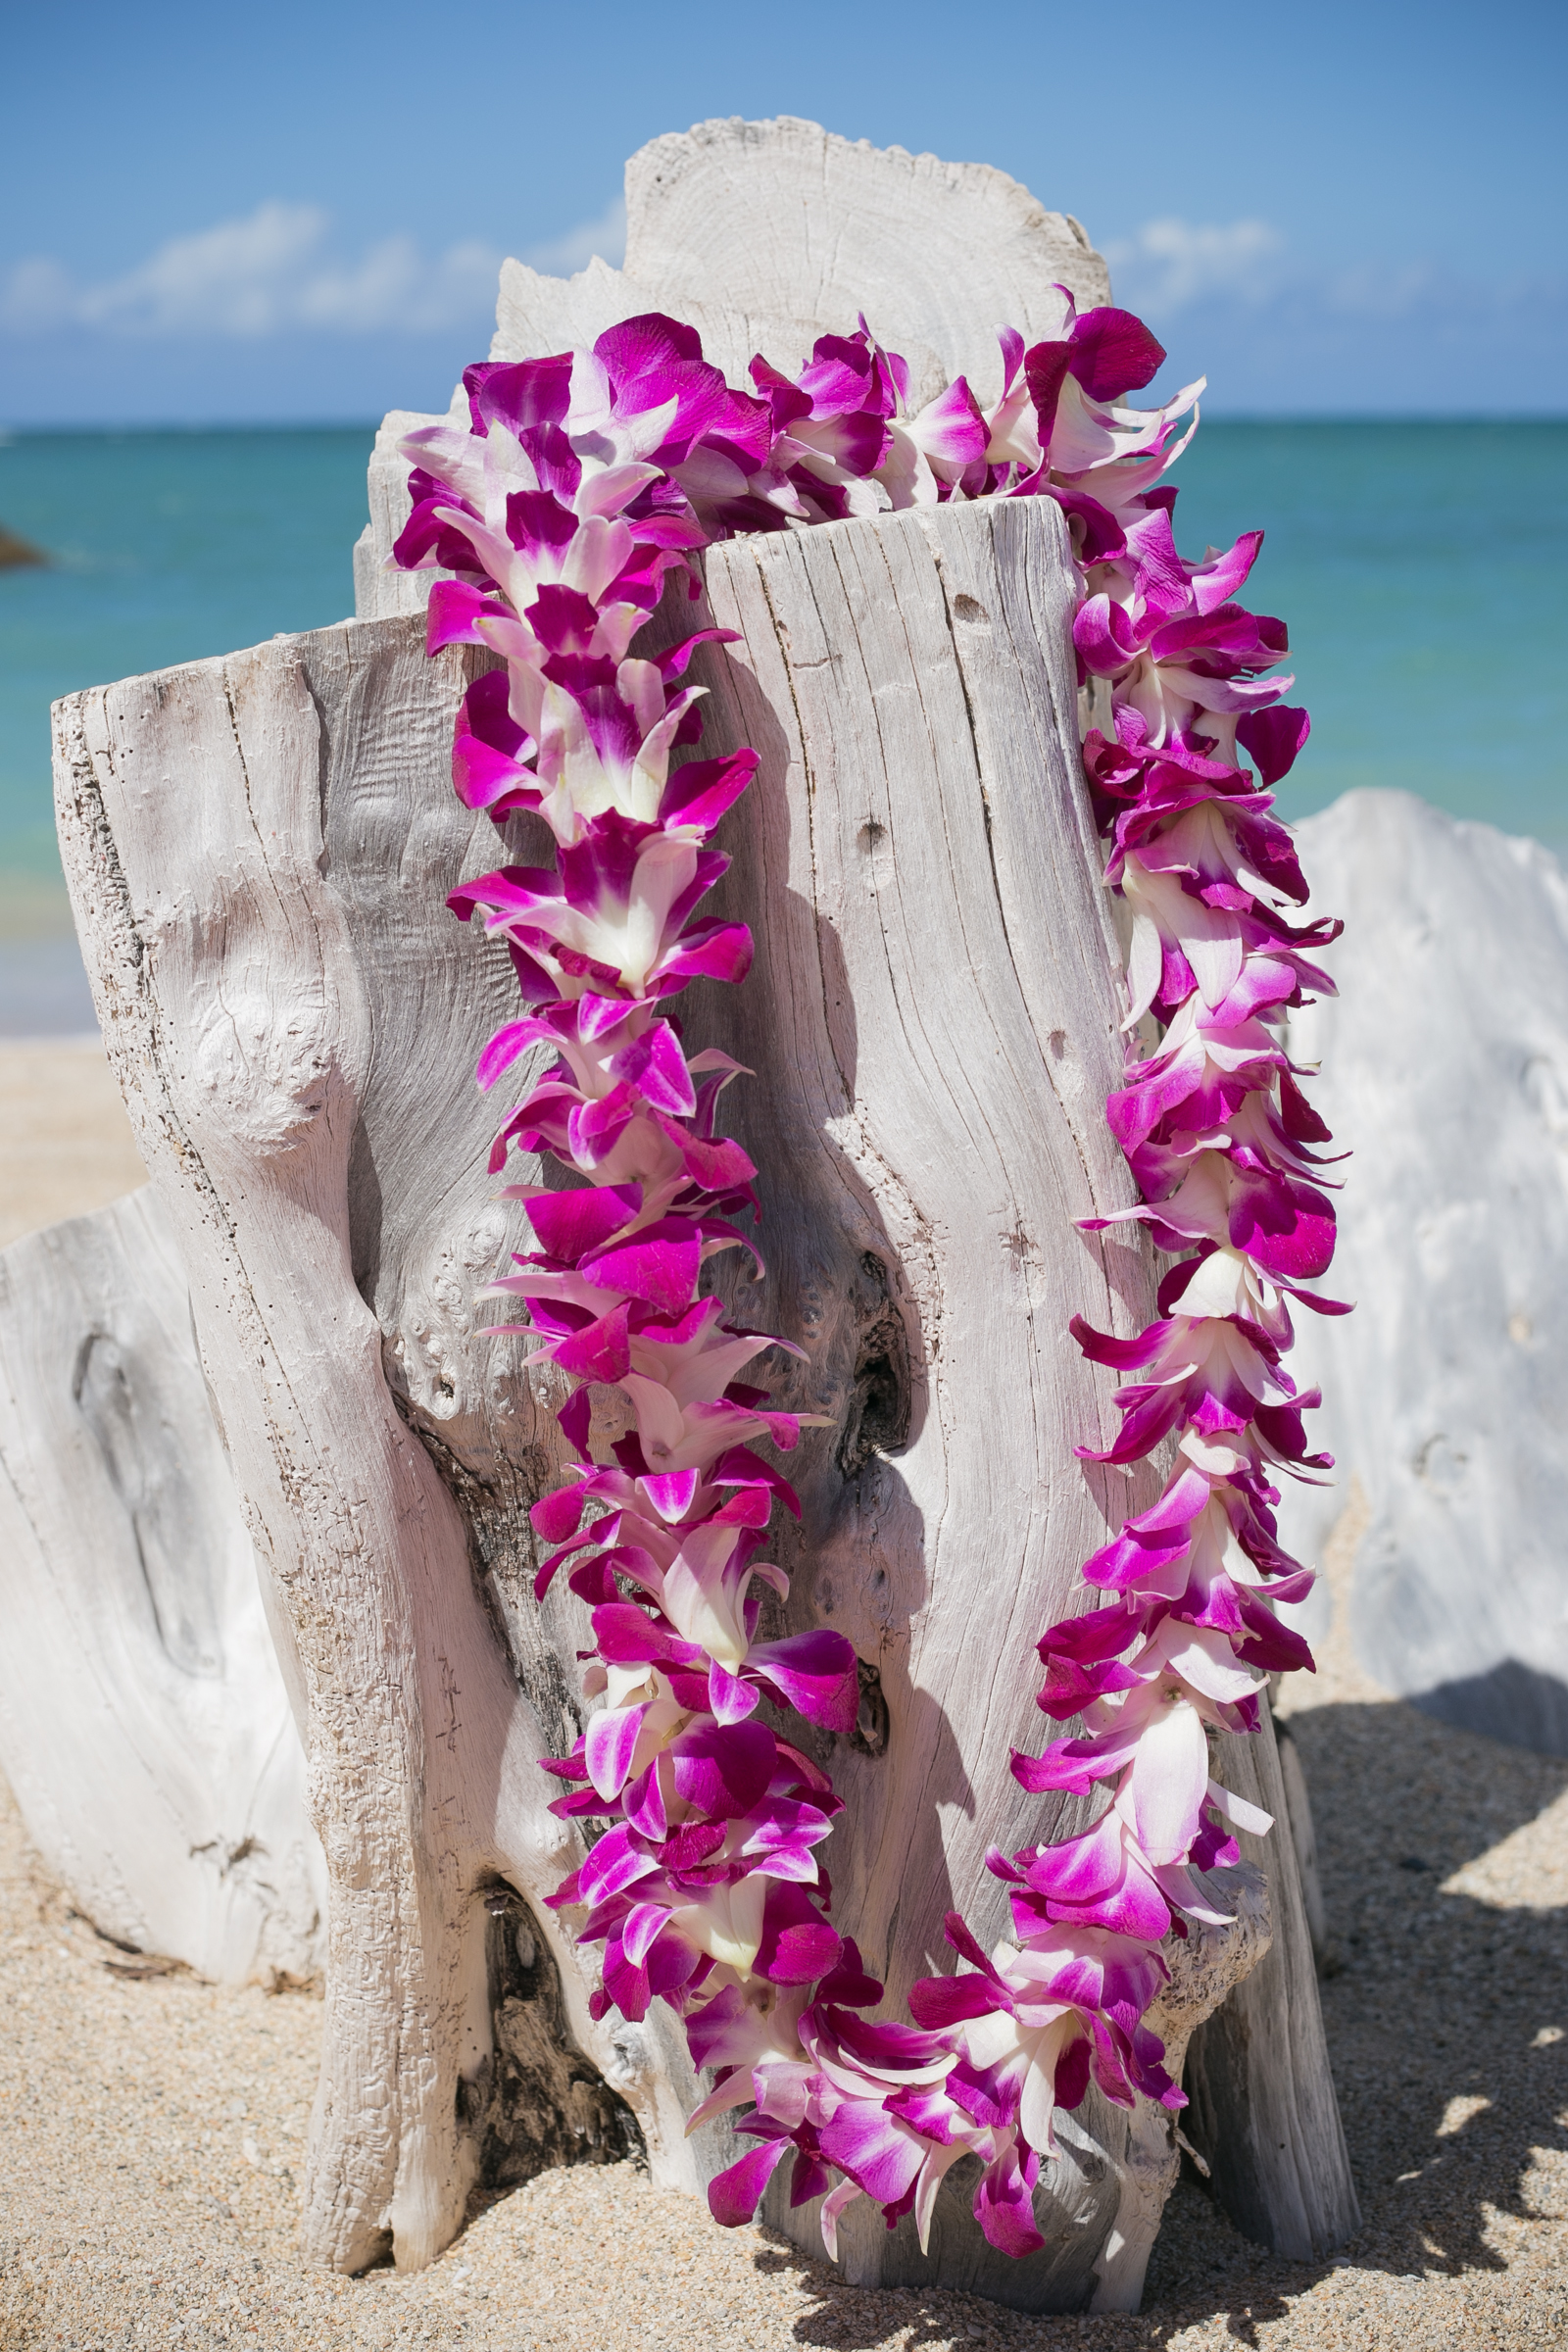 maui lei greetings at kahului airport   hawaii discount